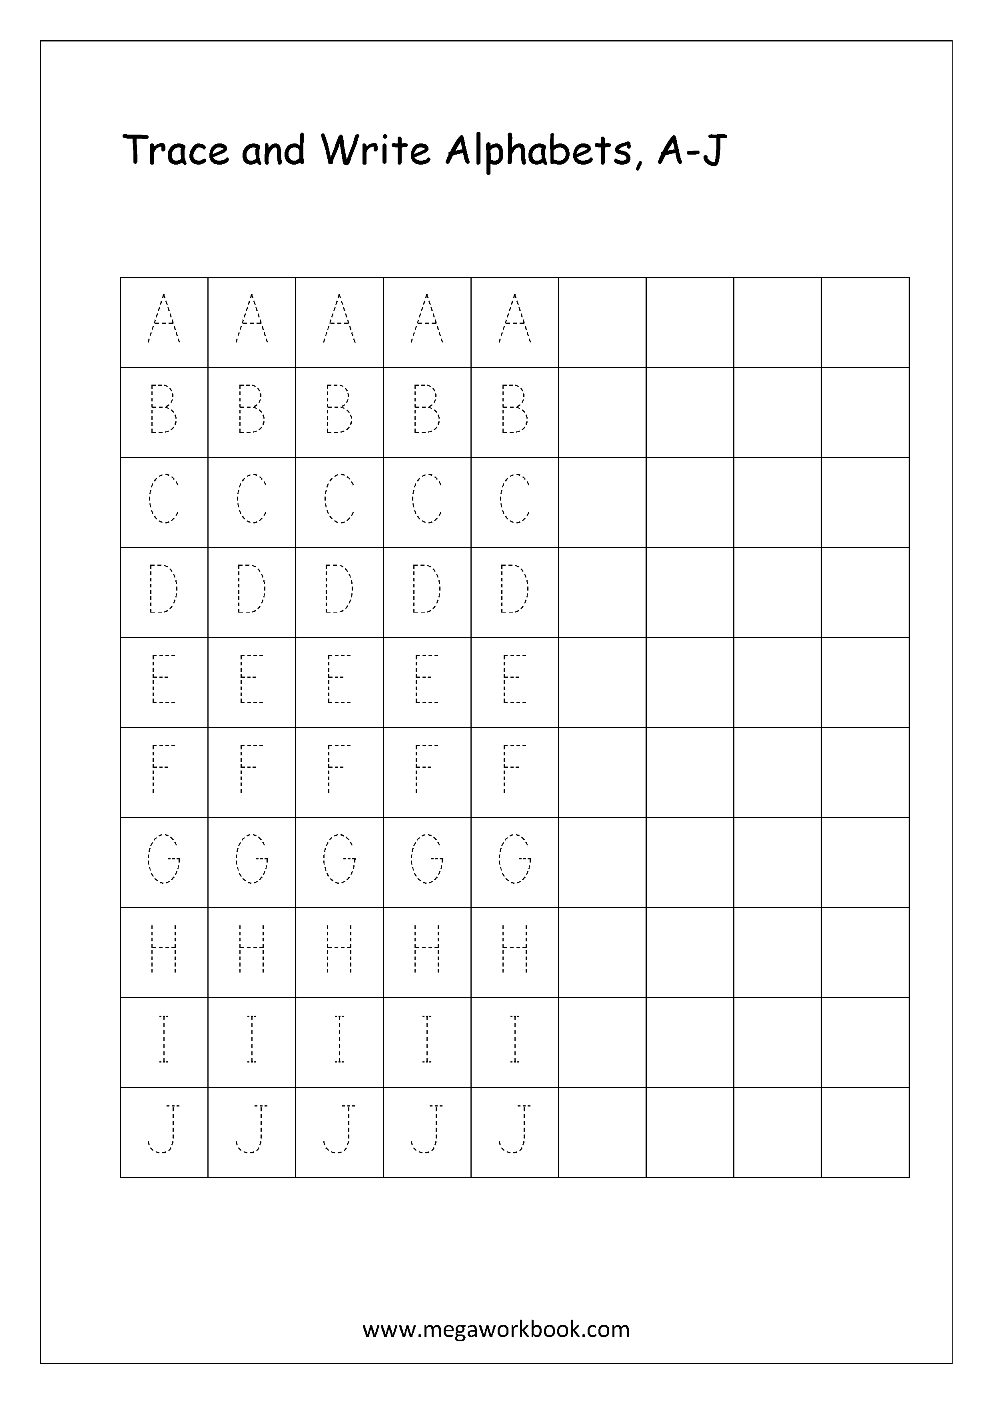 Free english worksheets alphabet writing capital letters english worksheet alphabet writing capital letters a j thecheapjerseys Gallery